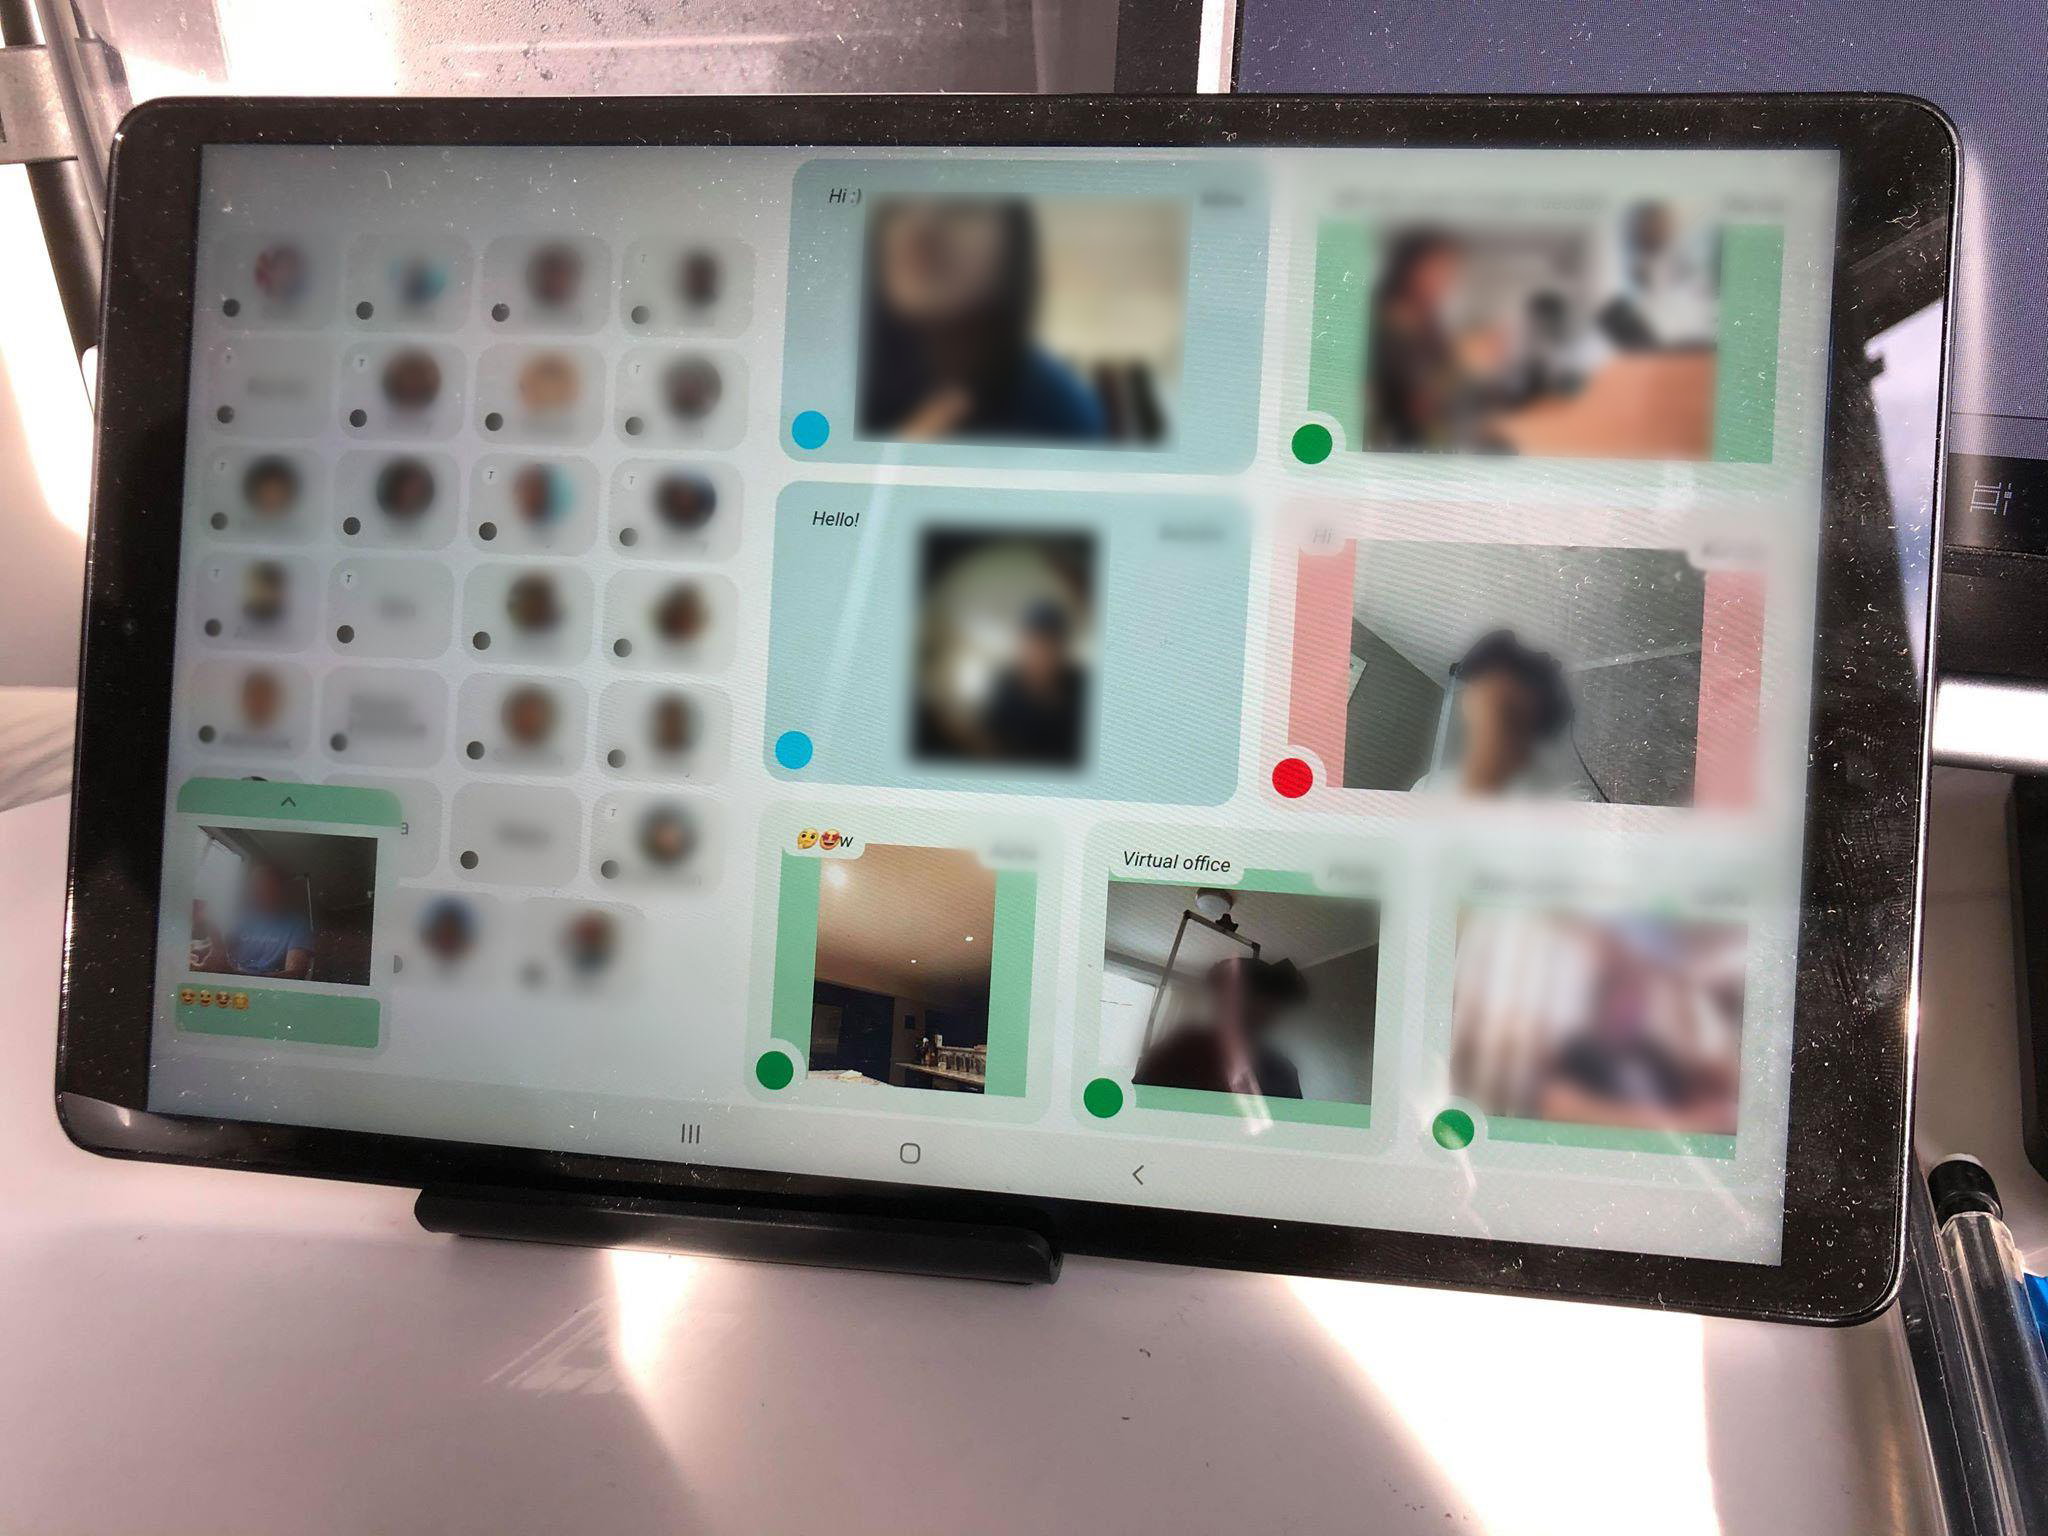 Photo of the tablet in use. Seven video feeds are displayed. Each is of a friend who is on camera and can also see you through the camera on the tablet. Each video has a colored border representing the status of the user. In the photo, four users are green, two are blue and one is red. There are also a number of gray regions with profile pictures depicting users who are offline. The photo is heavily blurred to protect the privacy of the users in the photo.